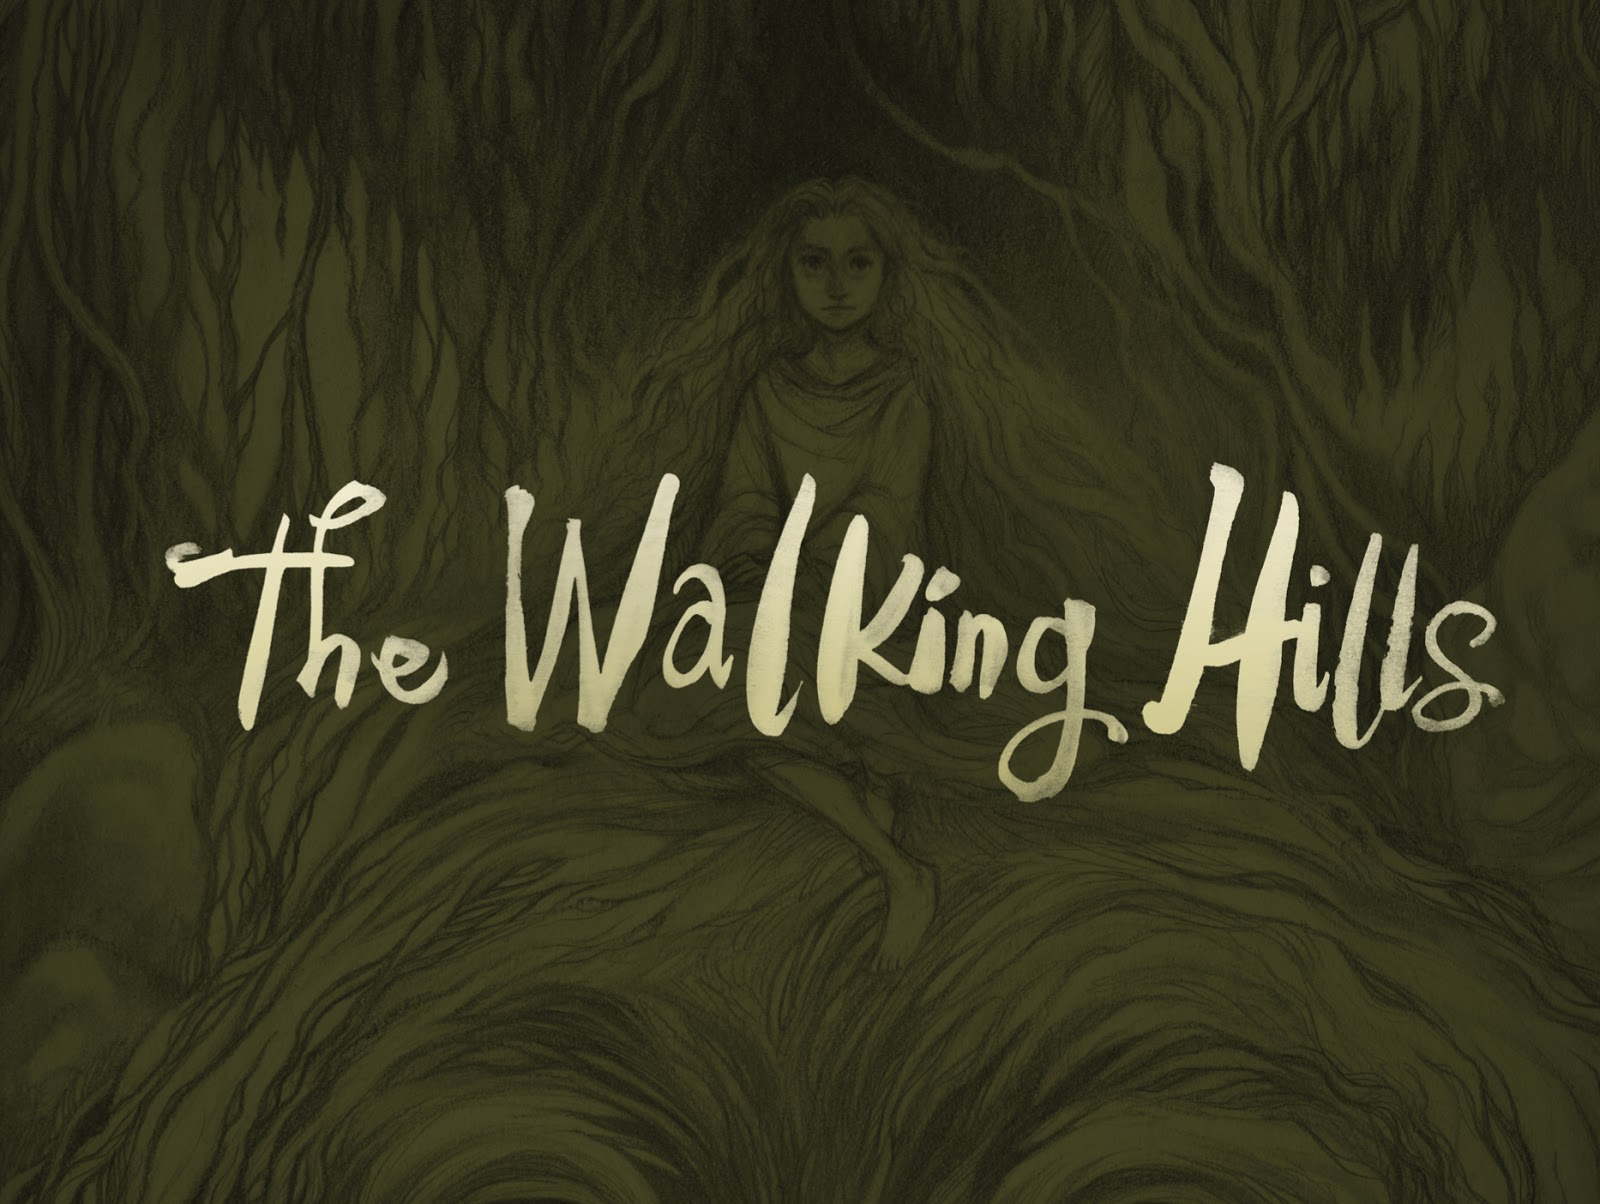 The Walking Hills